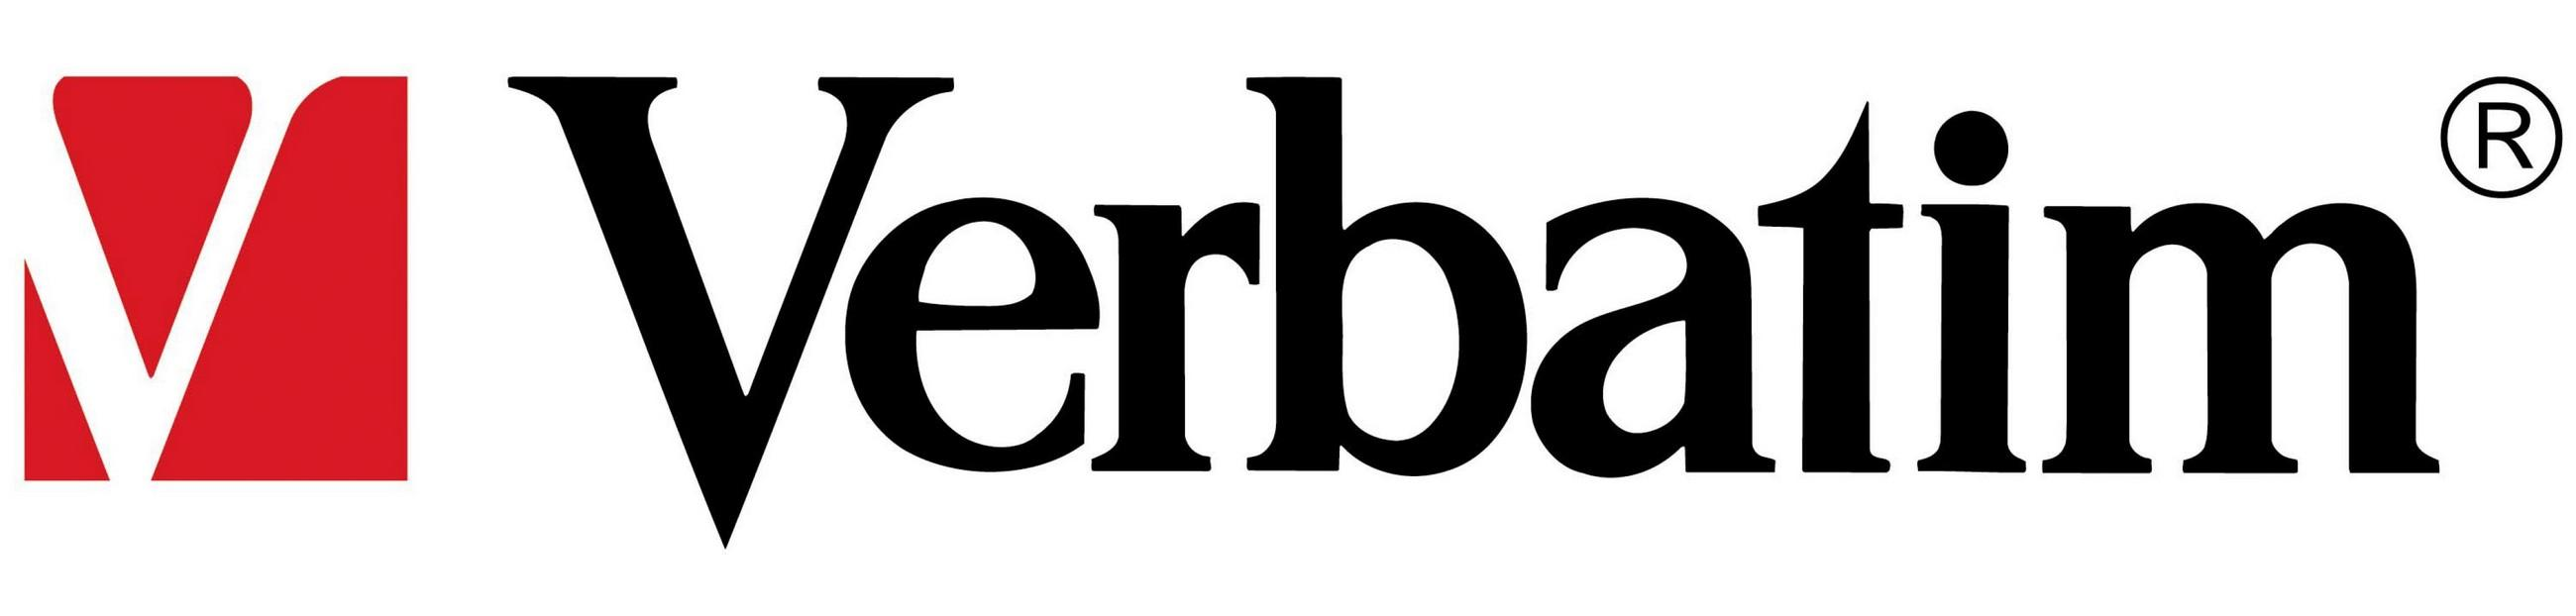 Verbatim Logo Wallpaper